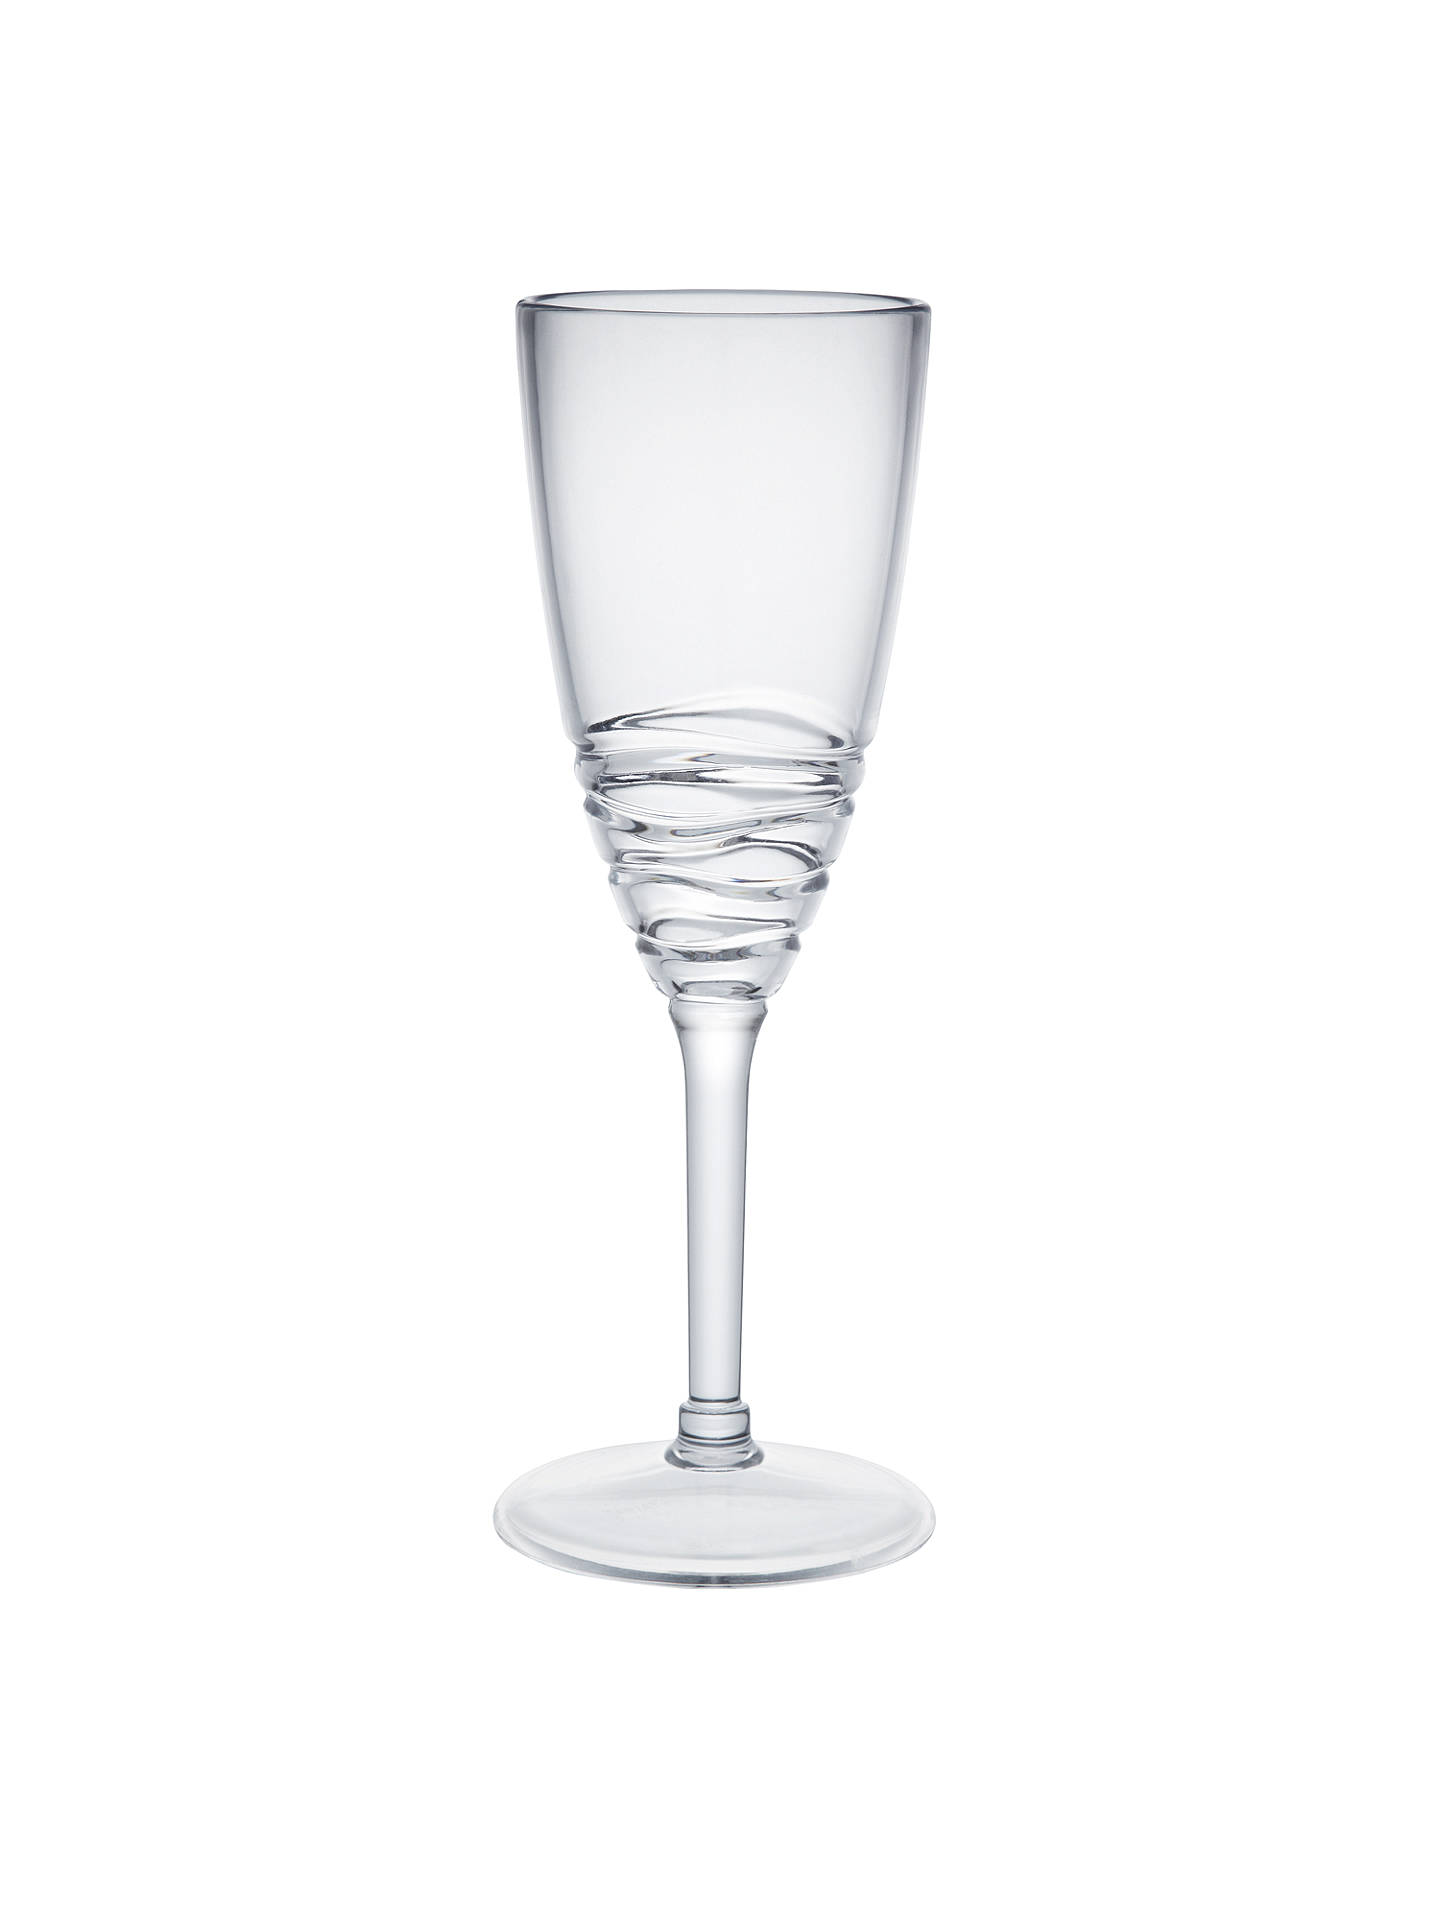 BuyJohn Lewis & Partners Wave Acrylic Picnic Champagne Glass Online at johnlewis.com